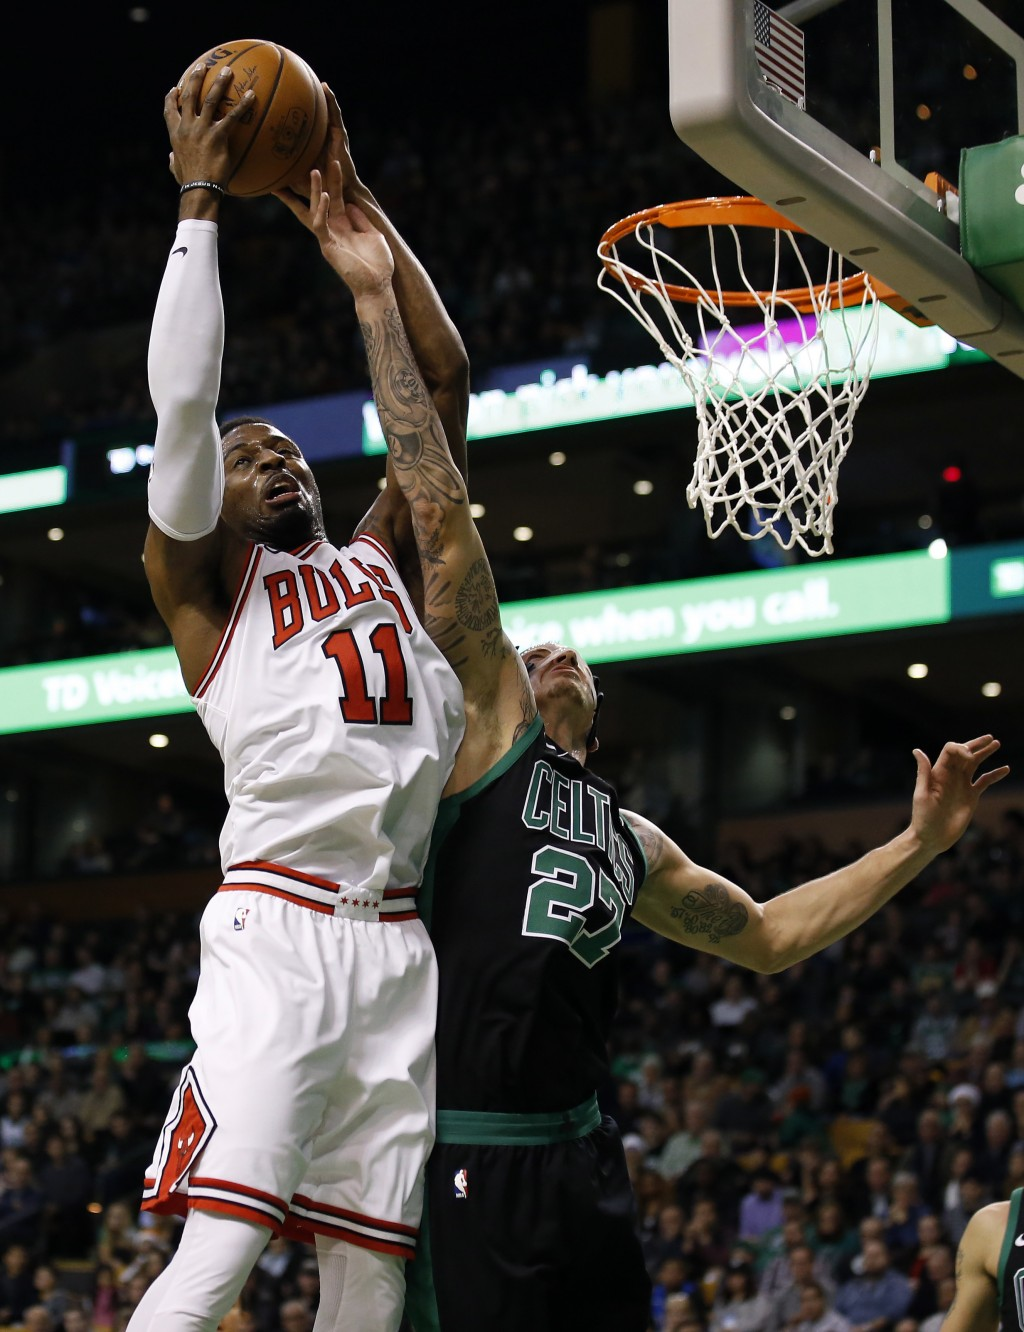 Chicago Bulls' David Nwaba (11) grabs a rebound over Boston Celtics' Daniel Theis during the fourth quarter of Boston's 117-92 win in an NBA basketbal...